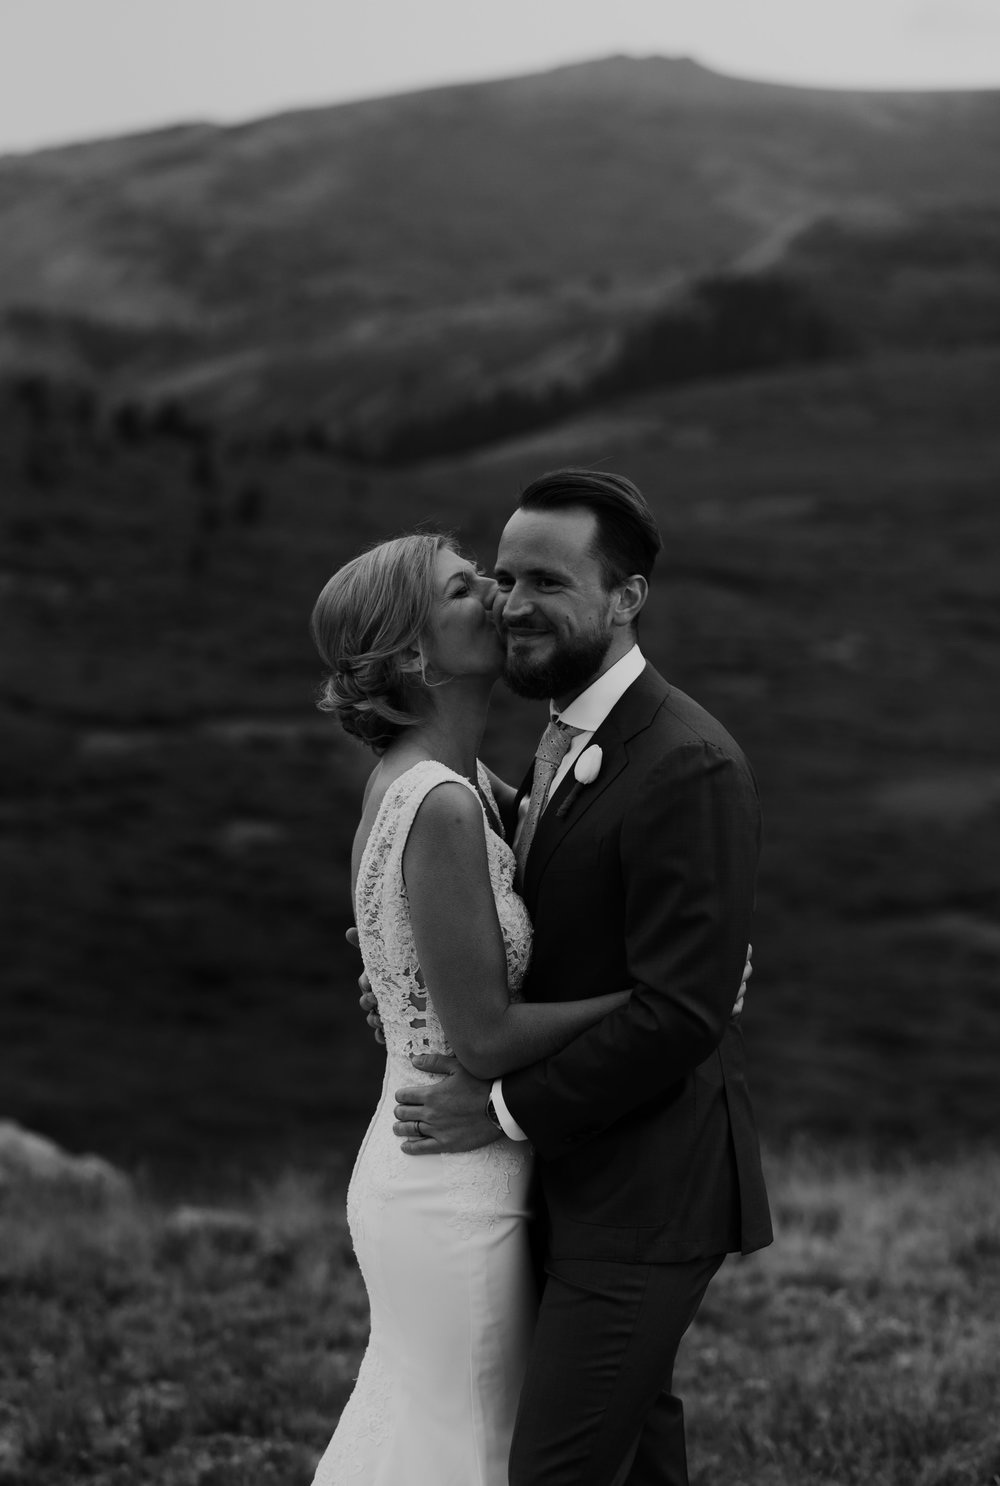 Colorado wedding and elopement photographer. Wedding photo inspiration.